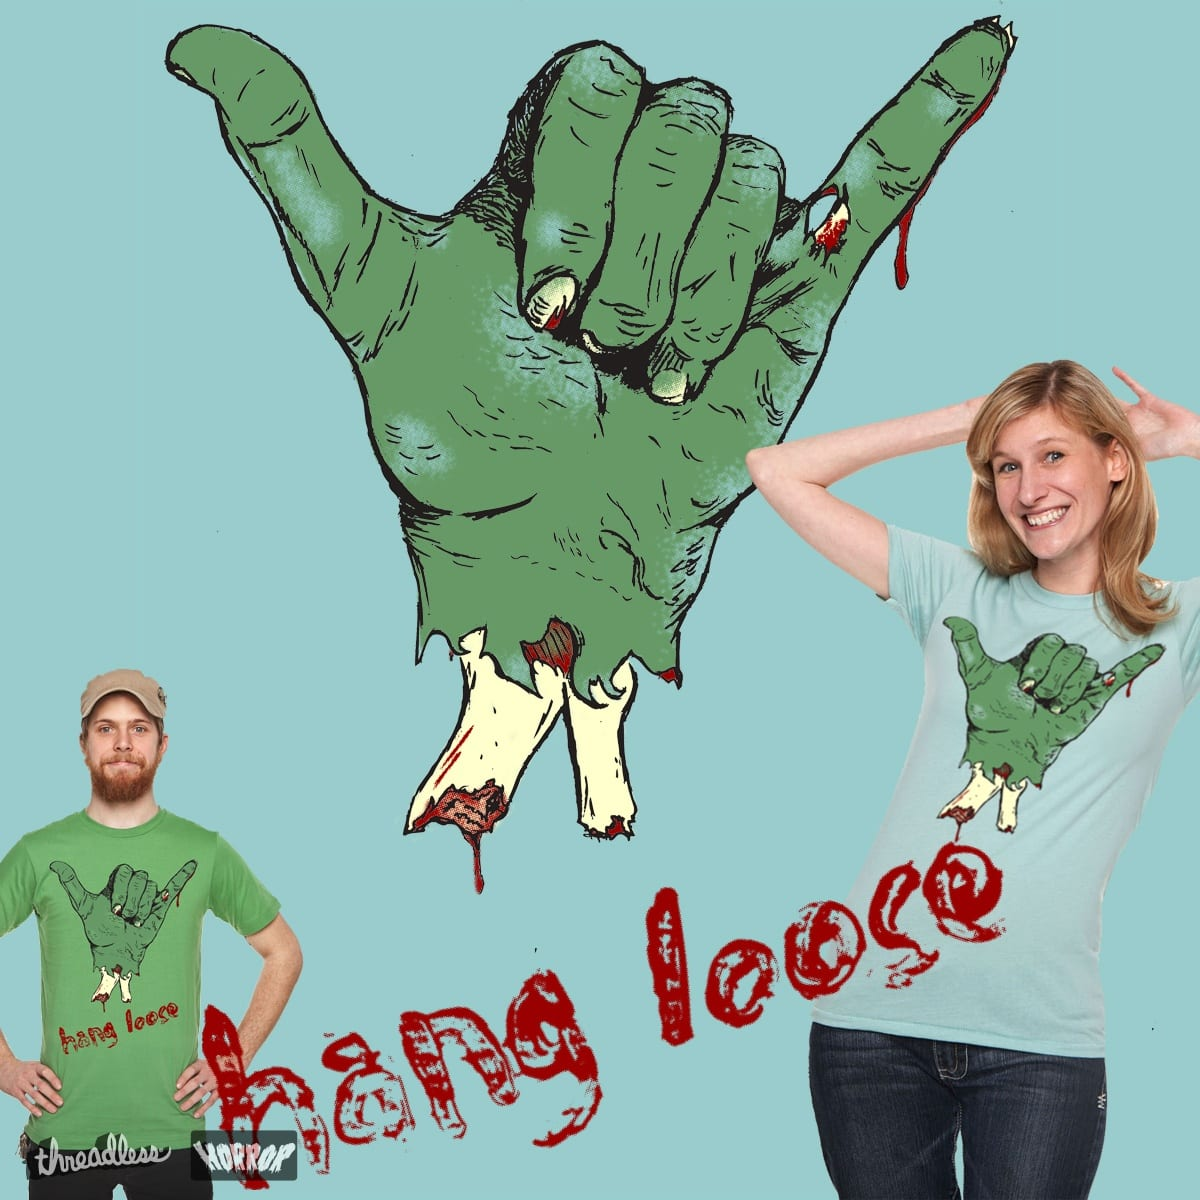 Hang Looser by bygrinstow on Threadless